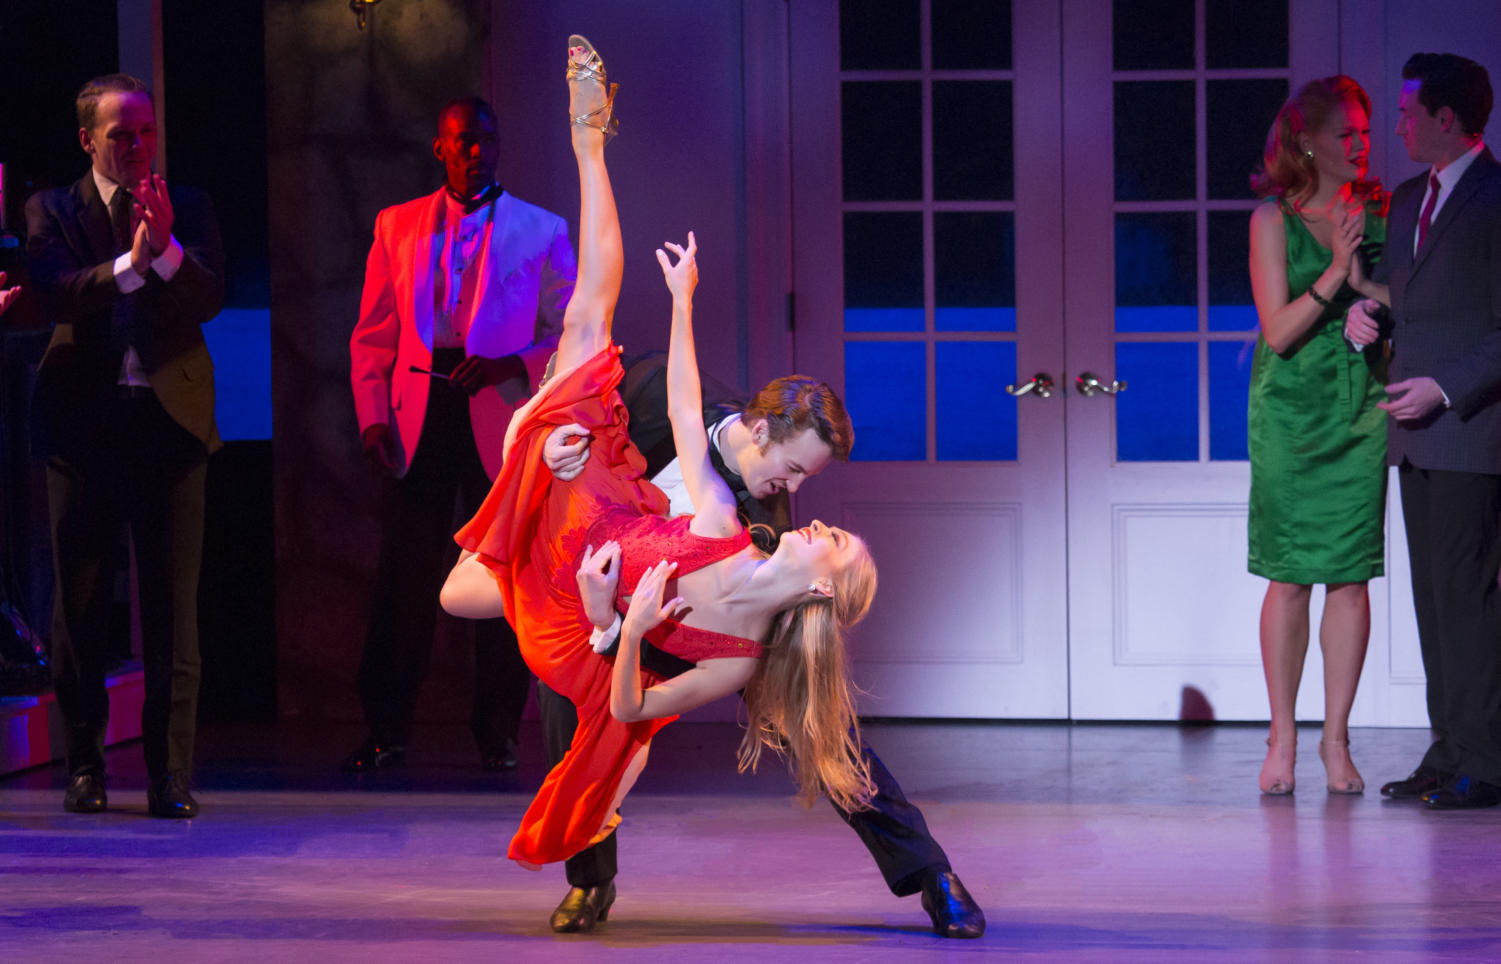 Anais Blake (as Penny Johnson, in red) and Aaron Patrick Craven (Johnny Castle) are in the spotlight in the national touring production of